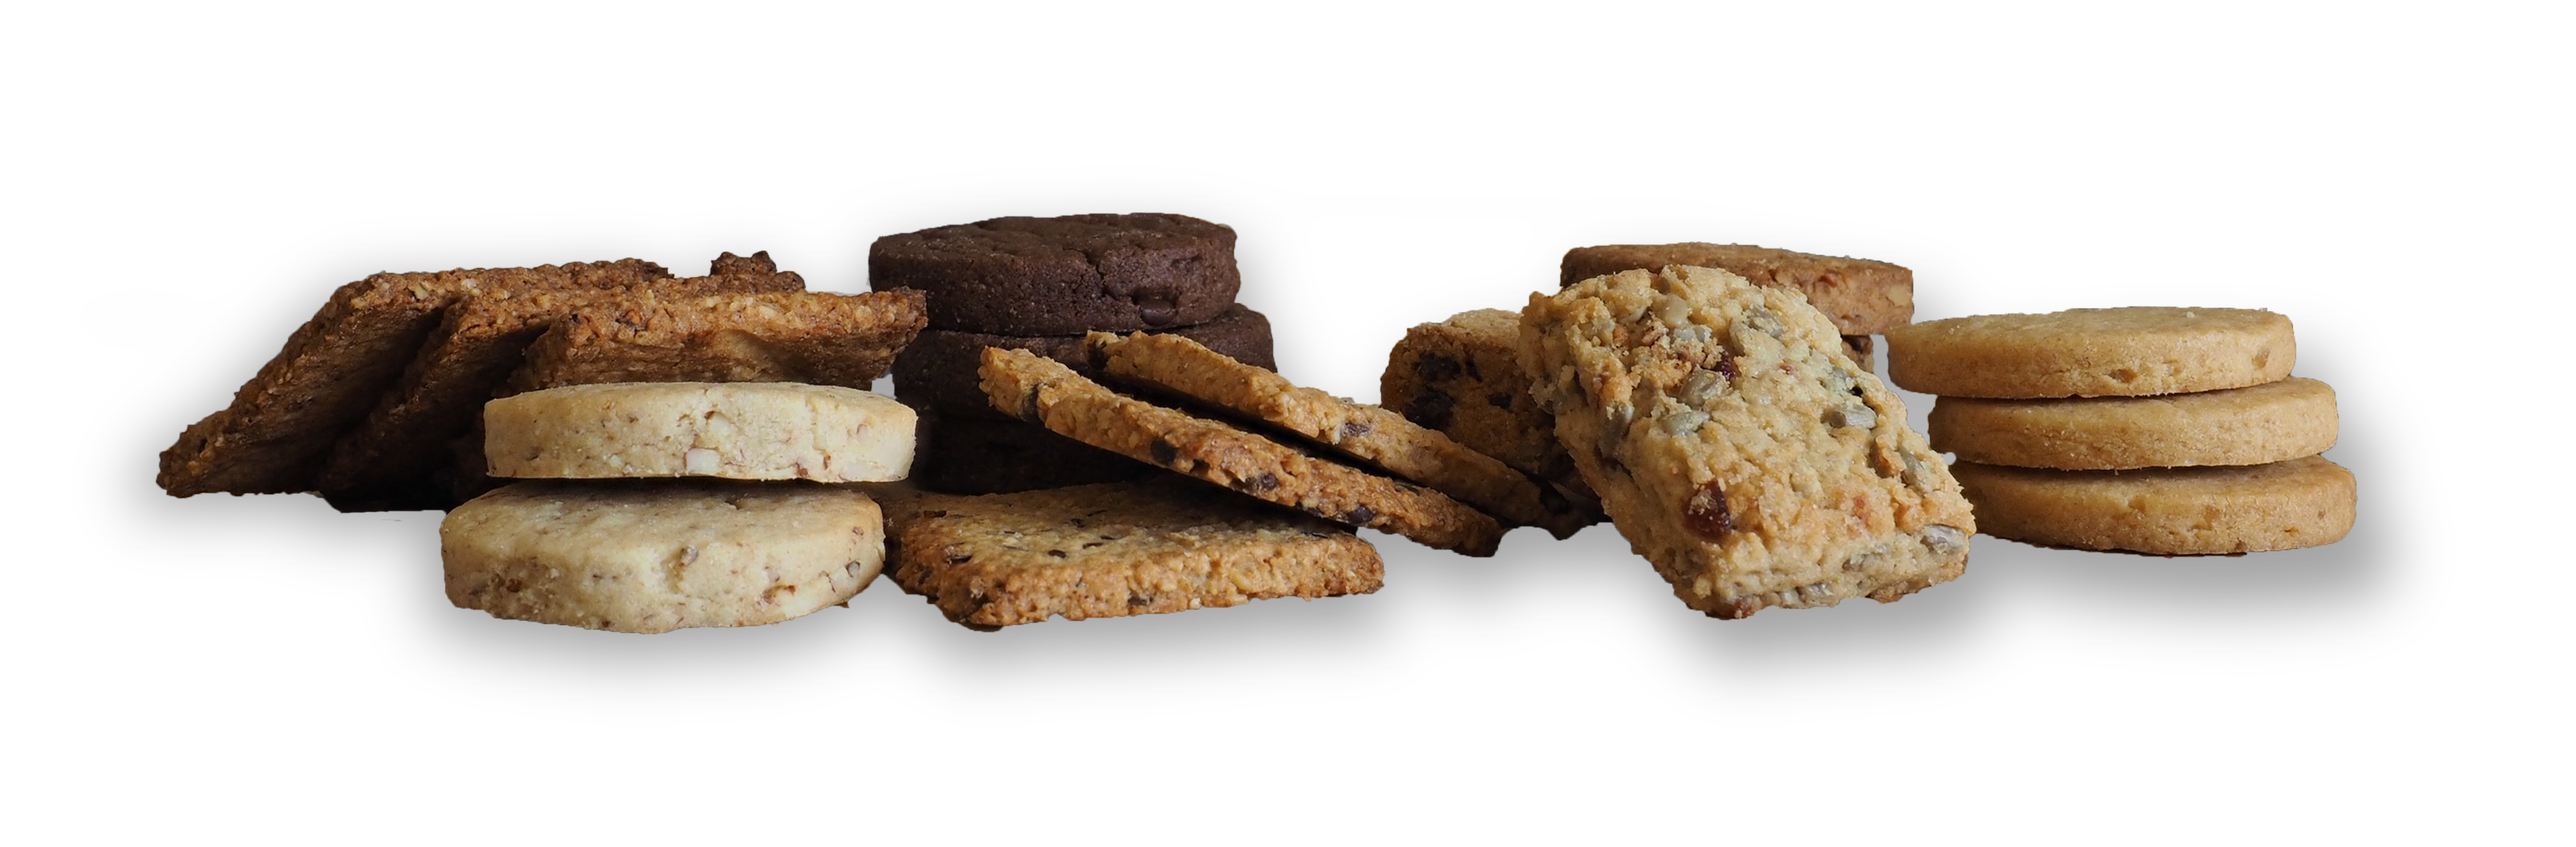 gamme_totale_biscuits_bio_les_biscuits_de_la_becasse